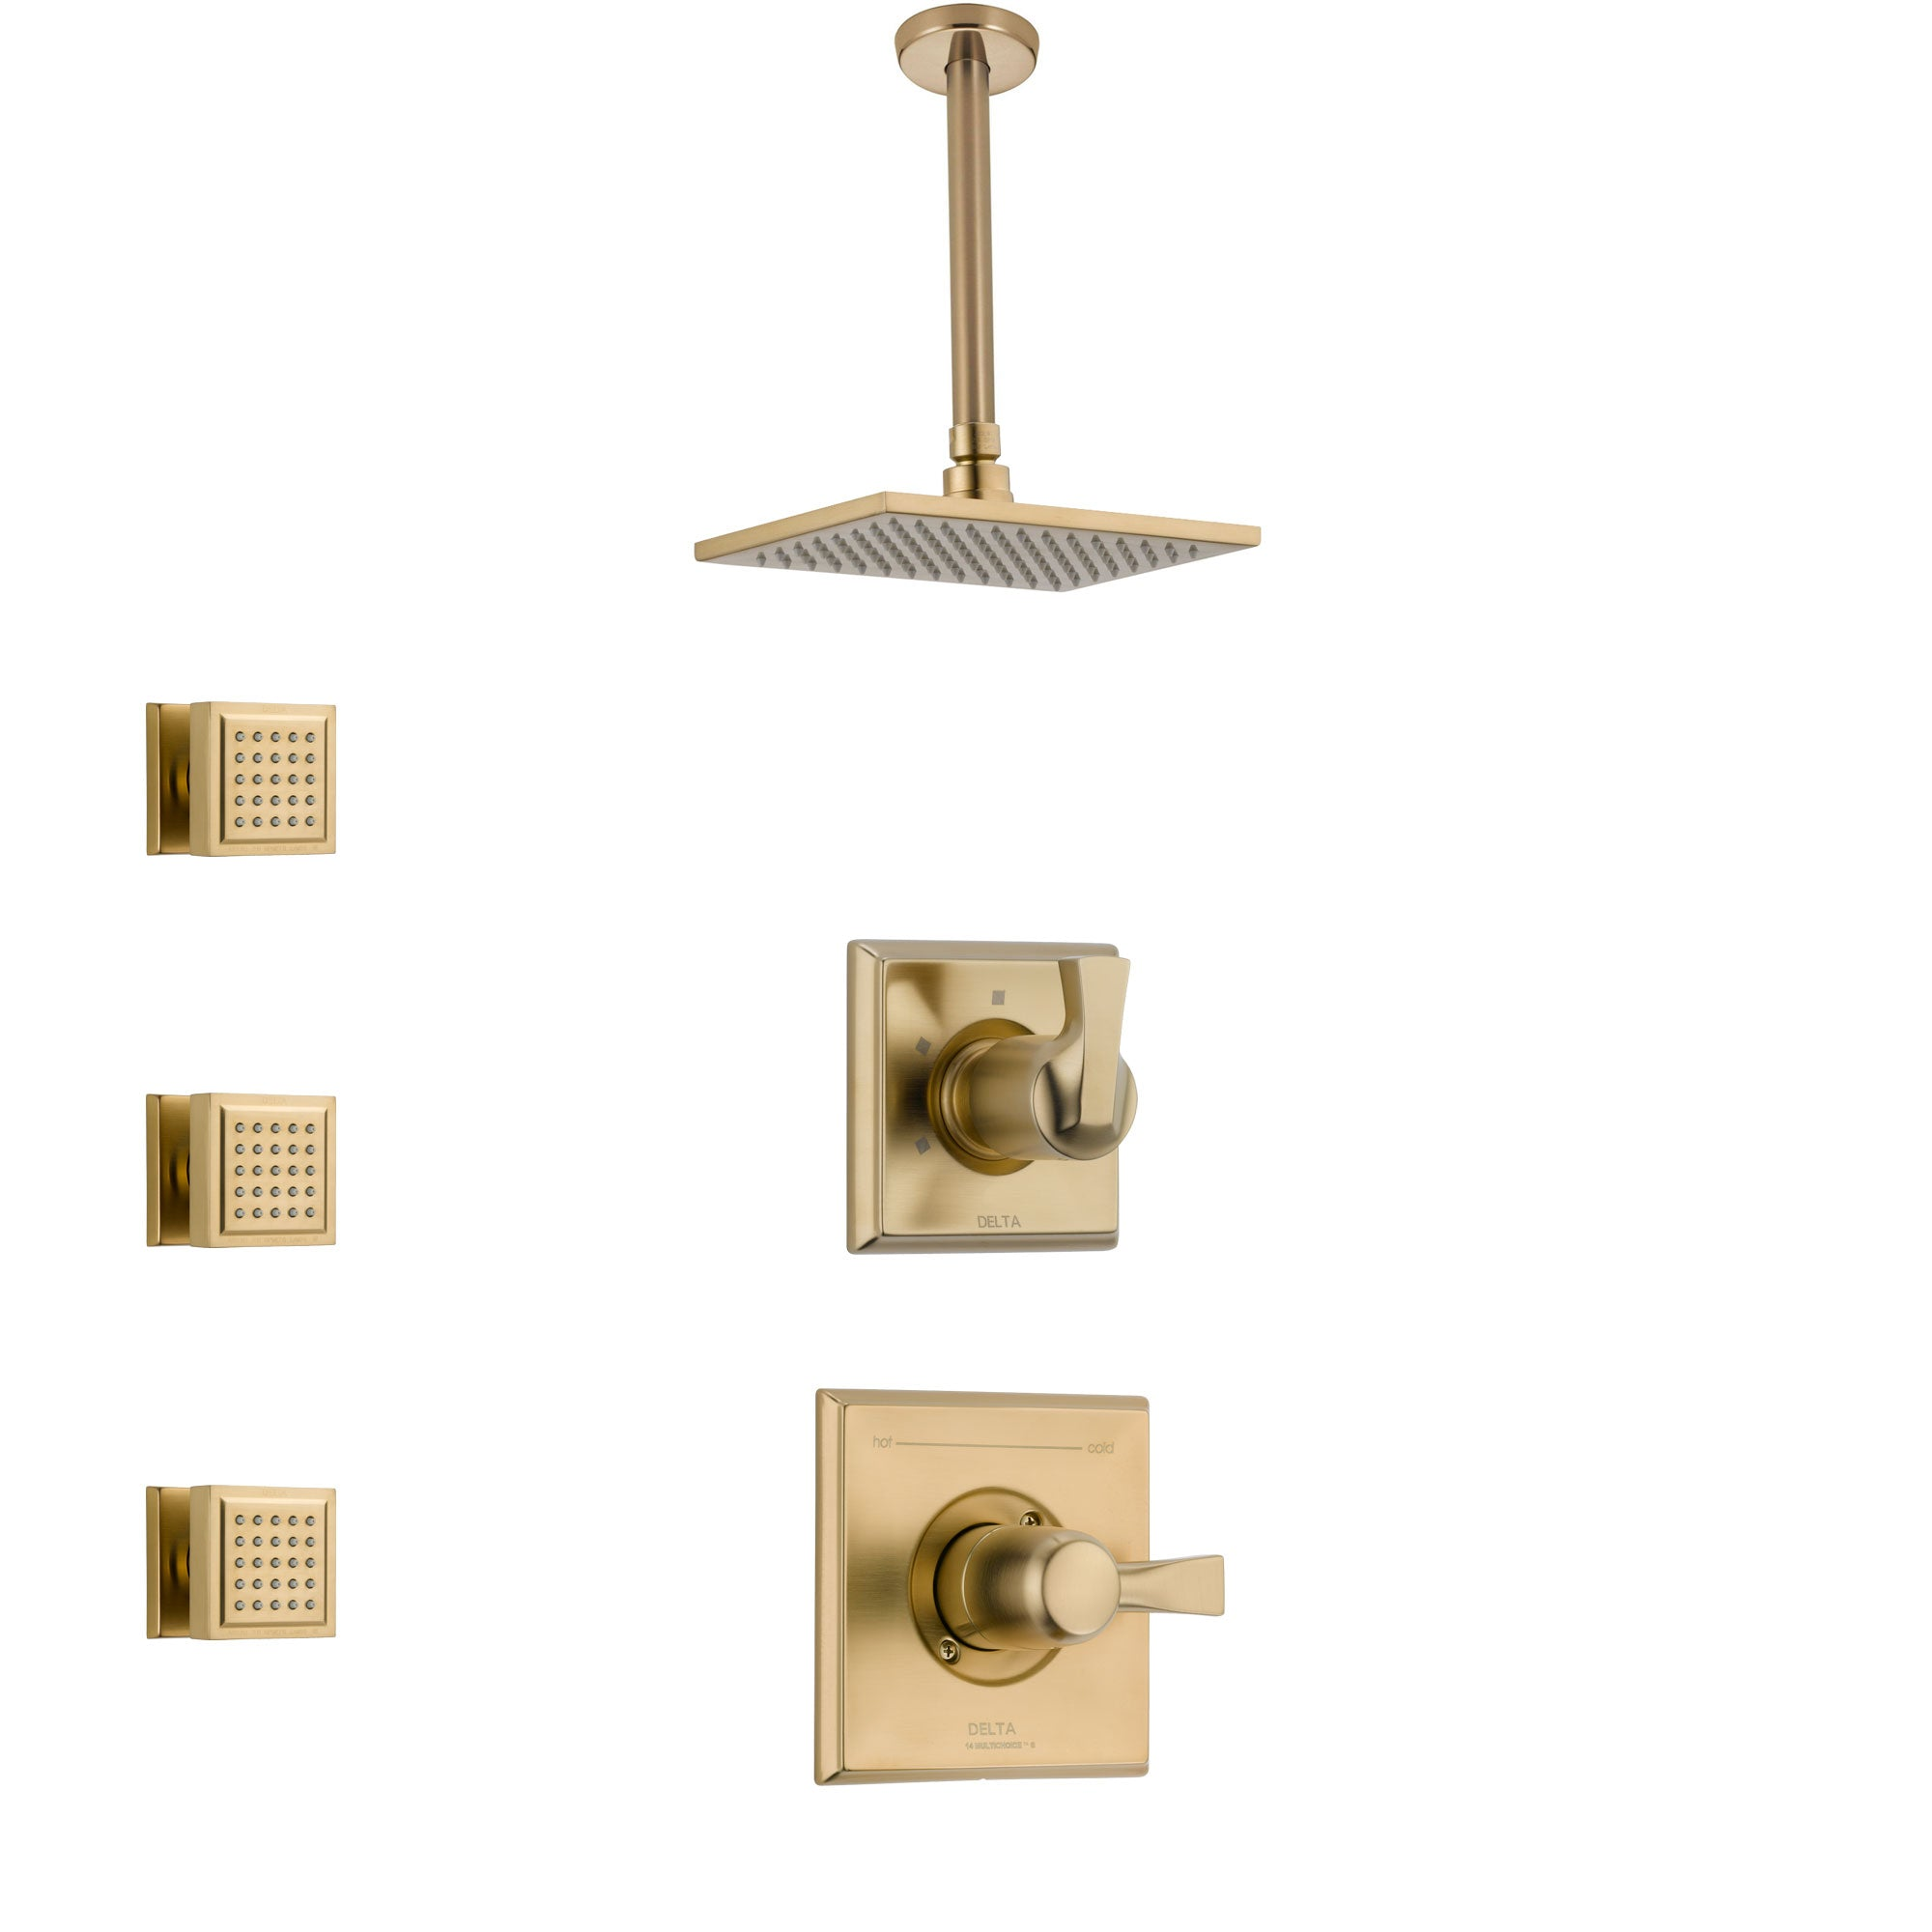 Delta Dryden Champagne Bronze Finish Shower System with Control Handle, 3-Setting Diverter, Ceiling Mount Showerhead, and 3 Body Sprays SS1451CZ7